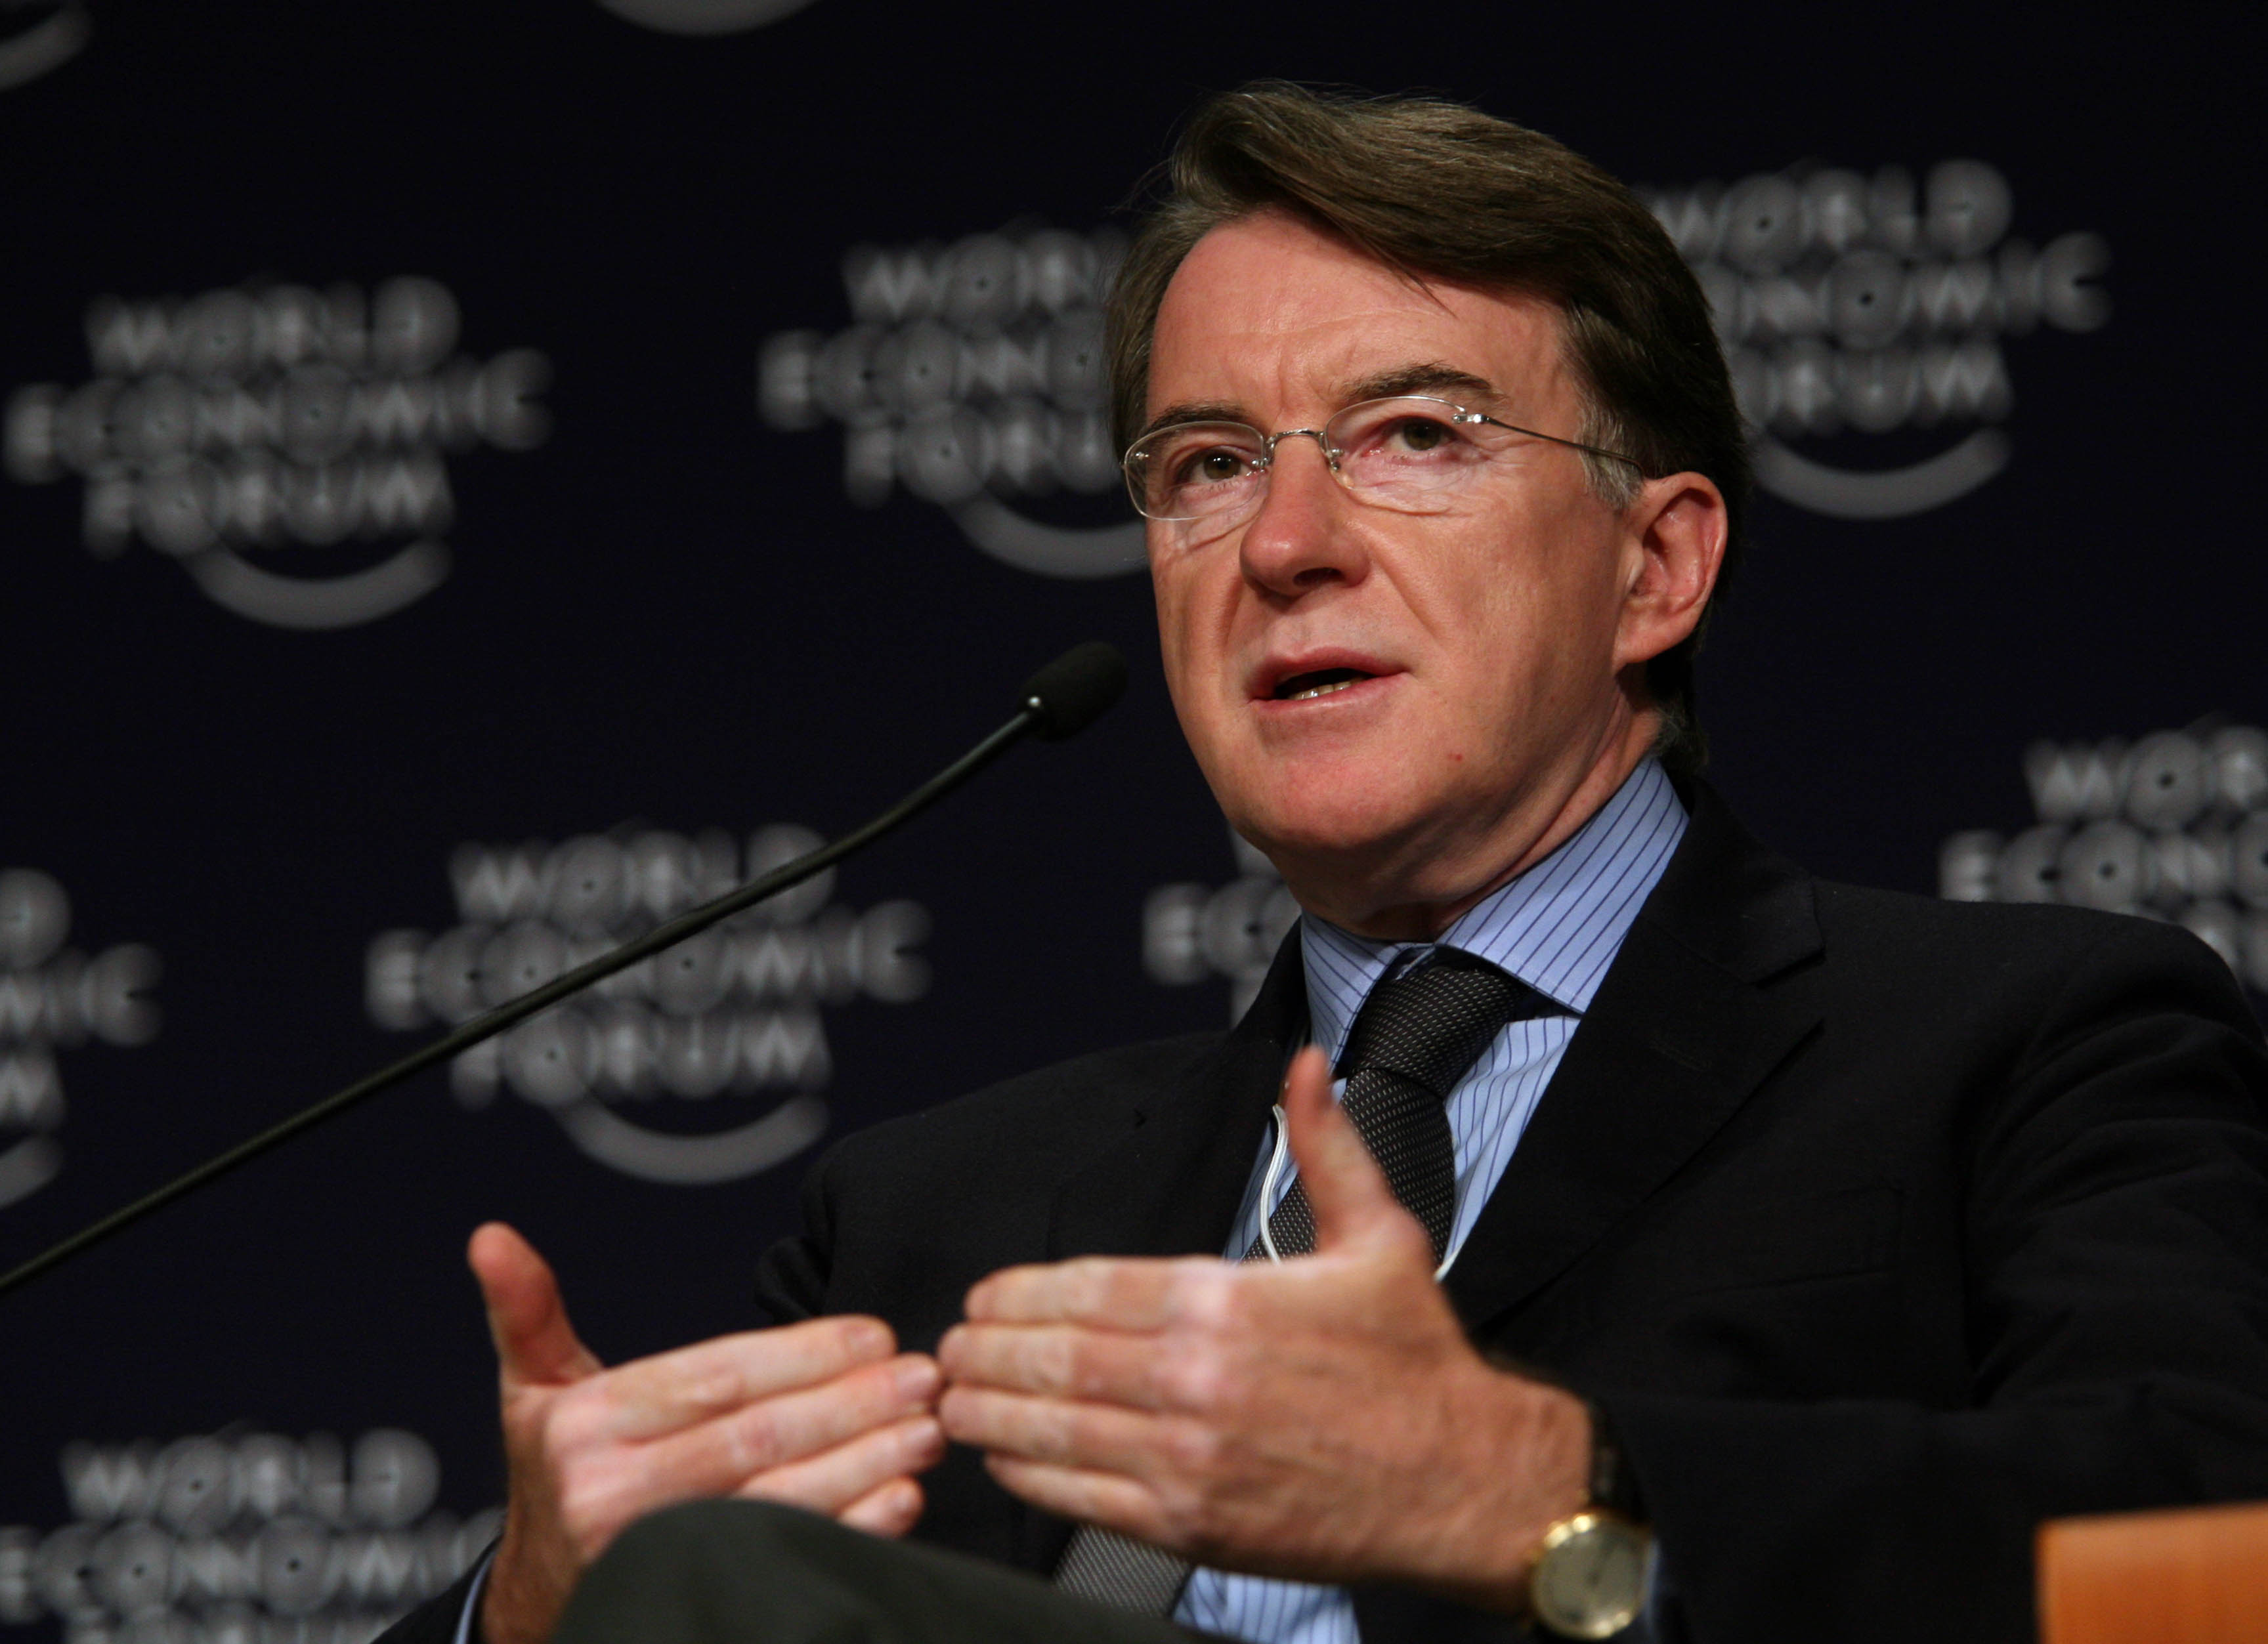 TIANJIN/CHINA, 27SEPT08 - Peter Mandelson, Commissioner, Trade, European Commission speaks at the The Global Economic Outlook plenary session at the World Economic Forum Annual Meeting of the New Champions in Tianjin, China 27 September 2008. Copyright World Economic Forum (www.weforum.org)/Photo by Natalie Behring